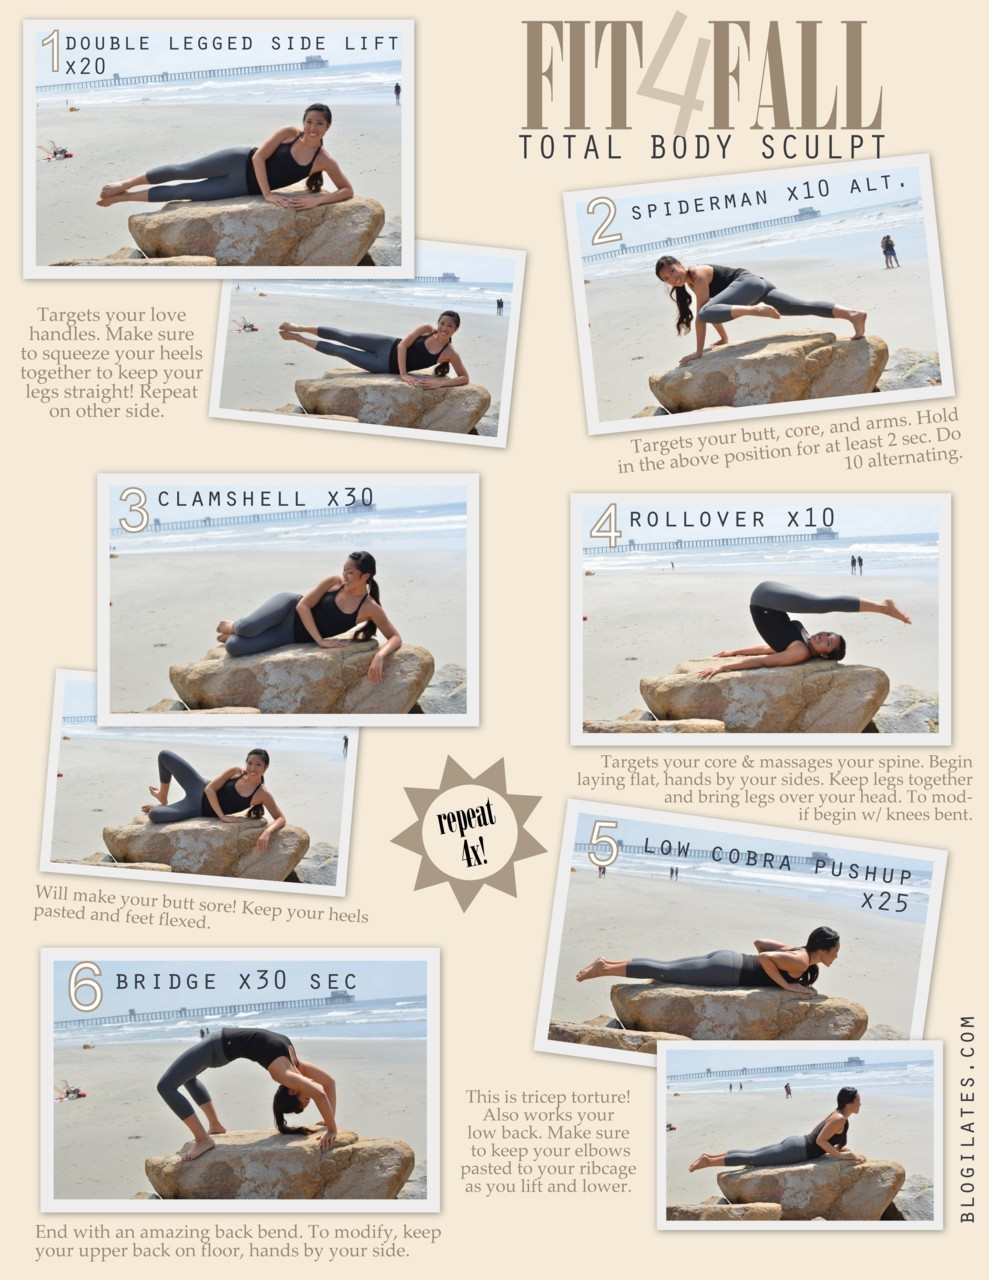 Fit 4 Fall! Total Body Sculpt Repeat this sequence 4x to really sculpt your whole body whether you're gearing up for back to school or back to work after summer. I promise that you will feel this! Targets your love handles, butt, arms, abs, legs, and back. Have fun :) What I'm wearing: Capris: Seamless Serena foldover crops by NUX USA. See them here. Top: Y-back Cami by MPG. See all of MPG here. Clothes provided by ActivewearUSA.com and were also worn in my Fashion of Fitness YouTube videos. I'm wearing a size small in both.